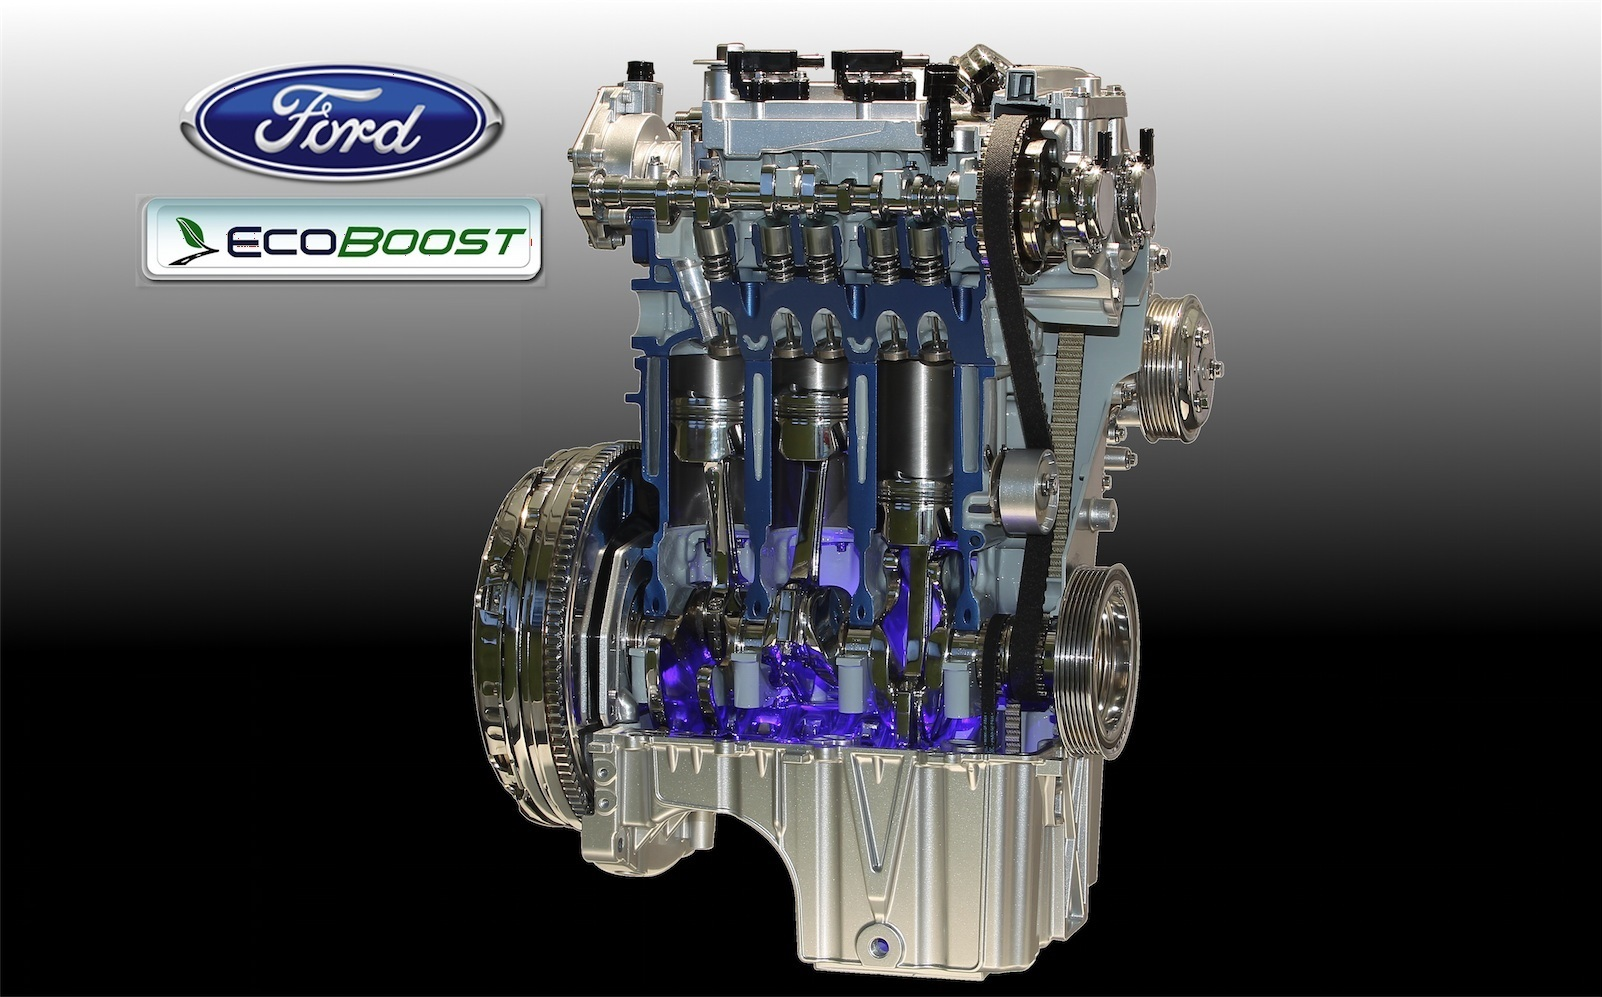 Motor_Ford_Ecoboost_1.0_3_cilindros_120_CV-01